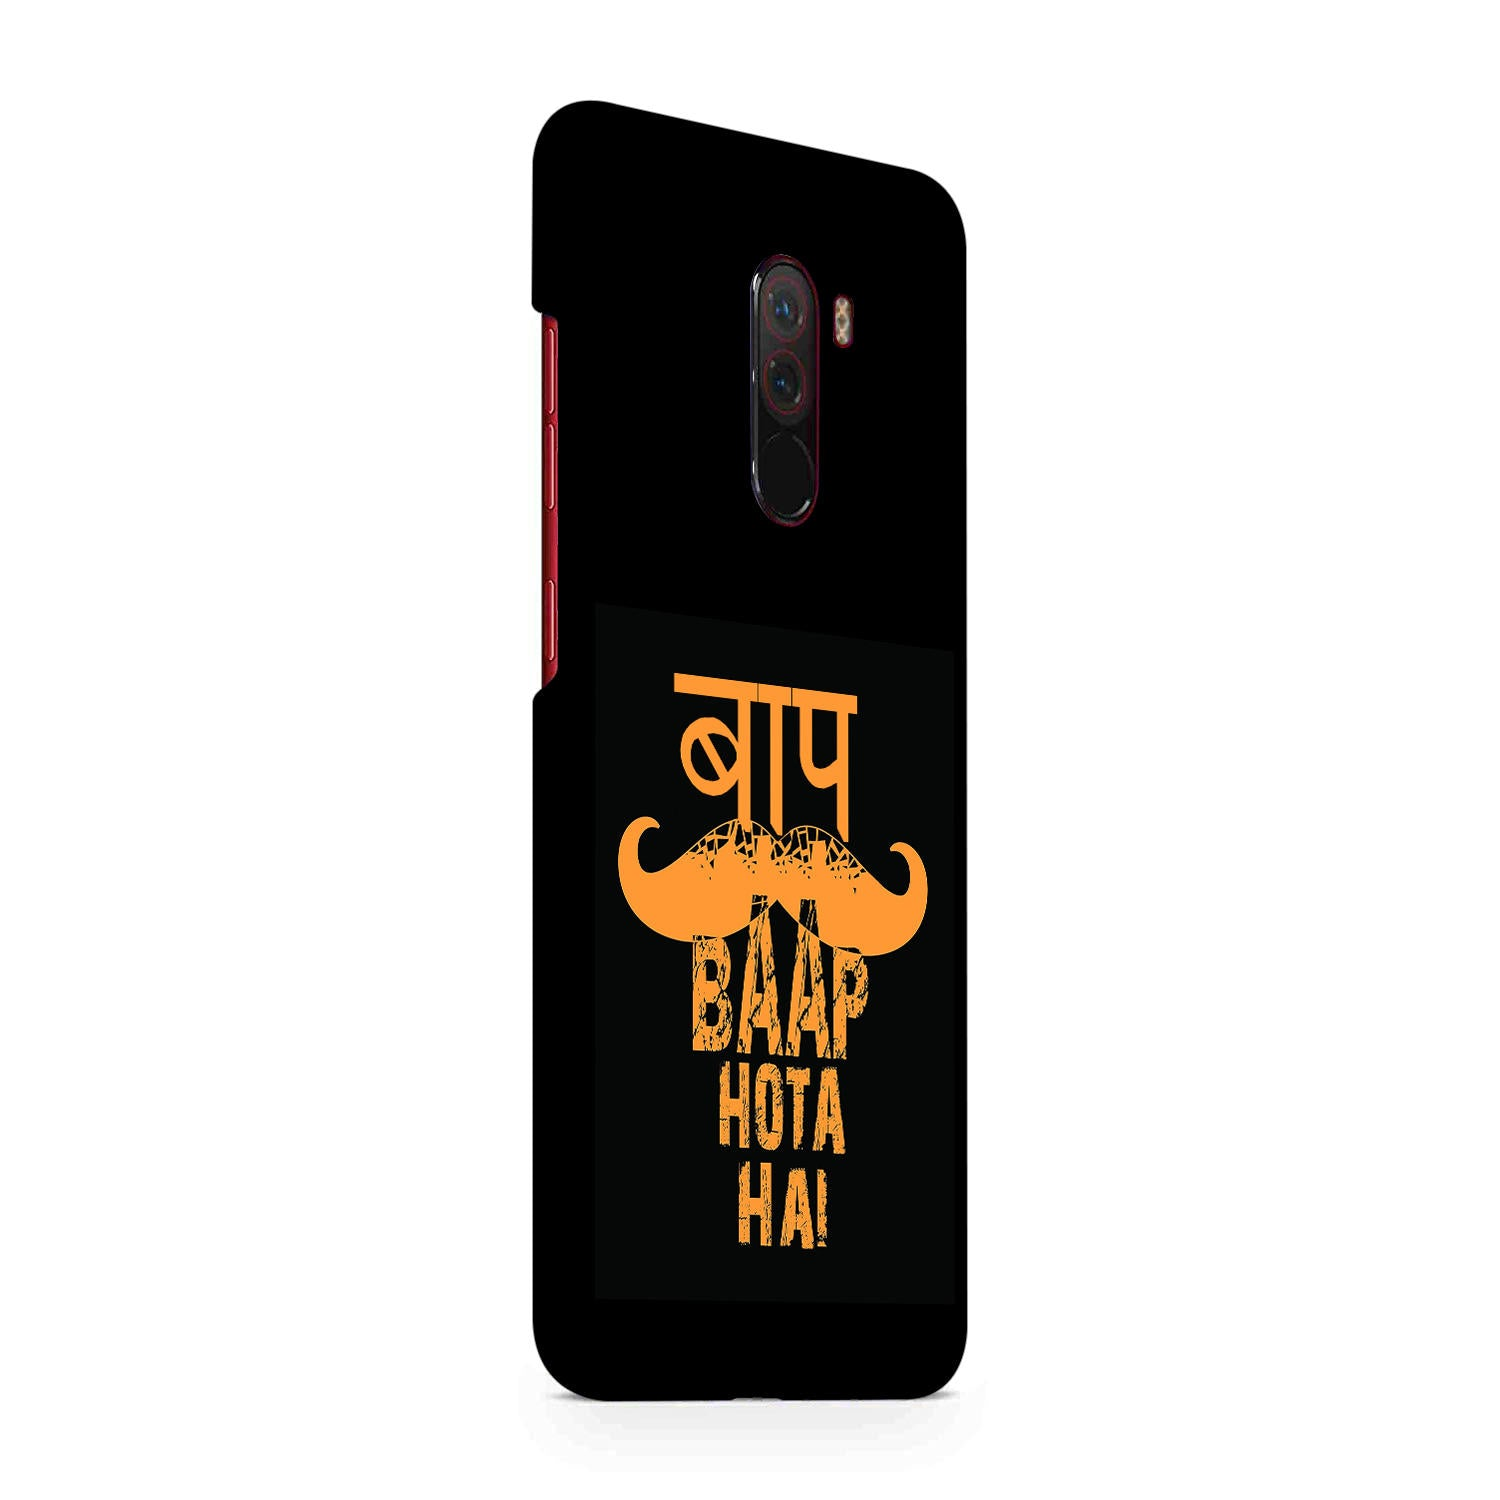 Baap Baap Hota Hai Father Day Gift Xiaomi Poco F1 Mobile Cover Case - MADANYU